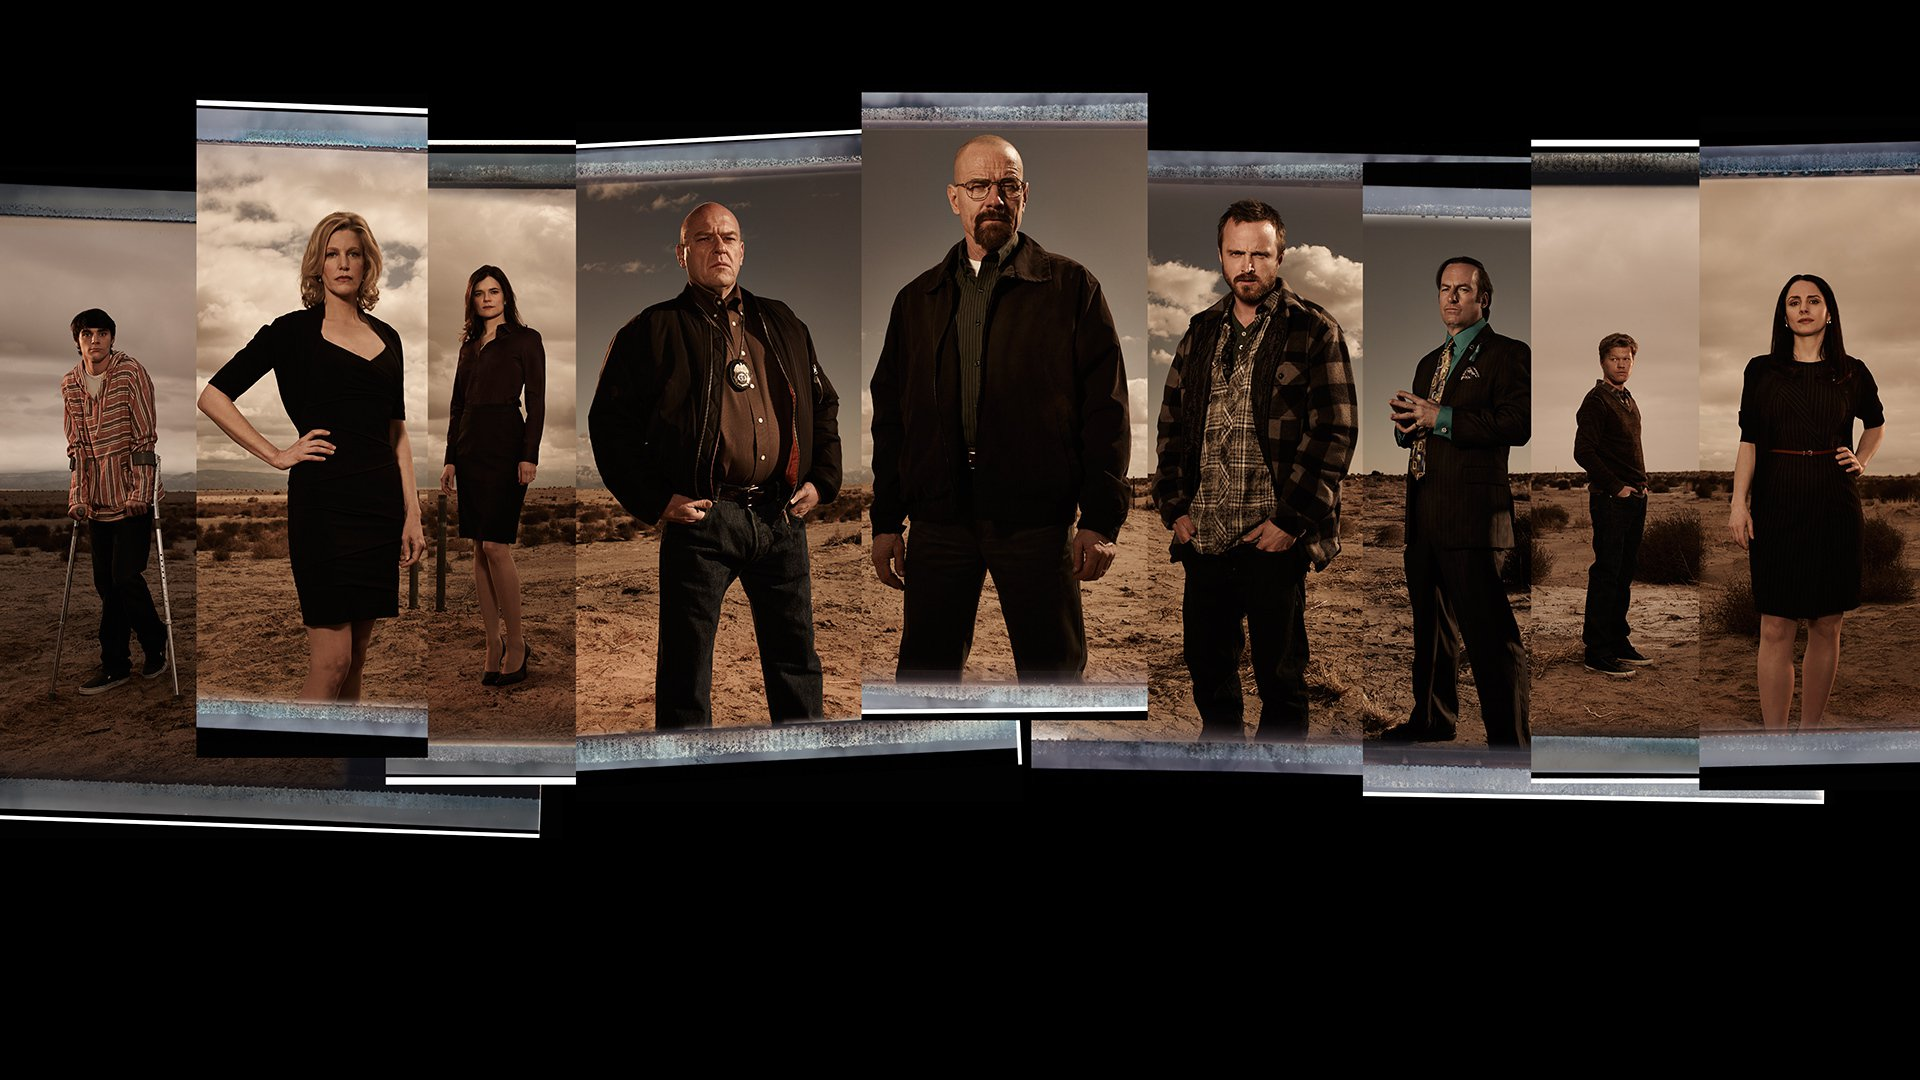 Walter White Iphone 5 Wallpaper 绝命毒师 高清壁纸 桌面背景 1920x1080 Id 675482 Wallpaper Abyss